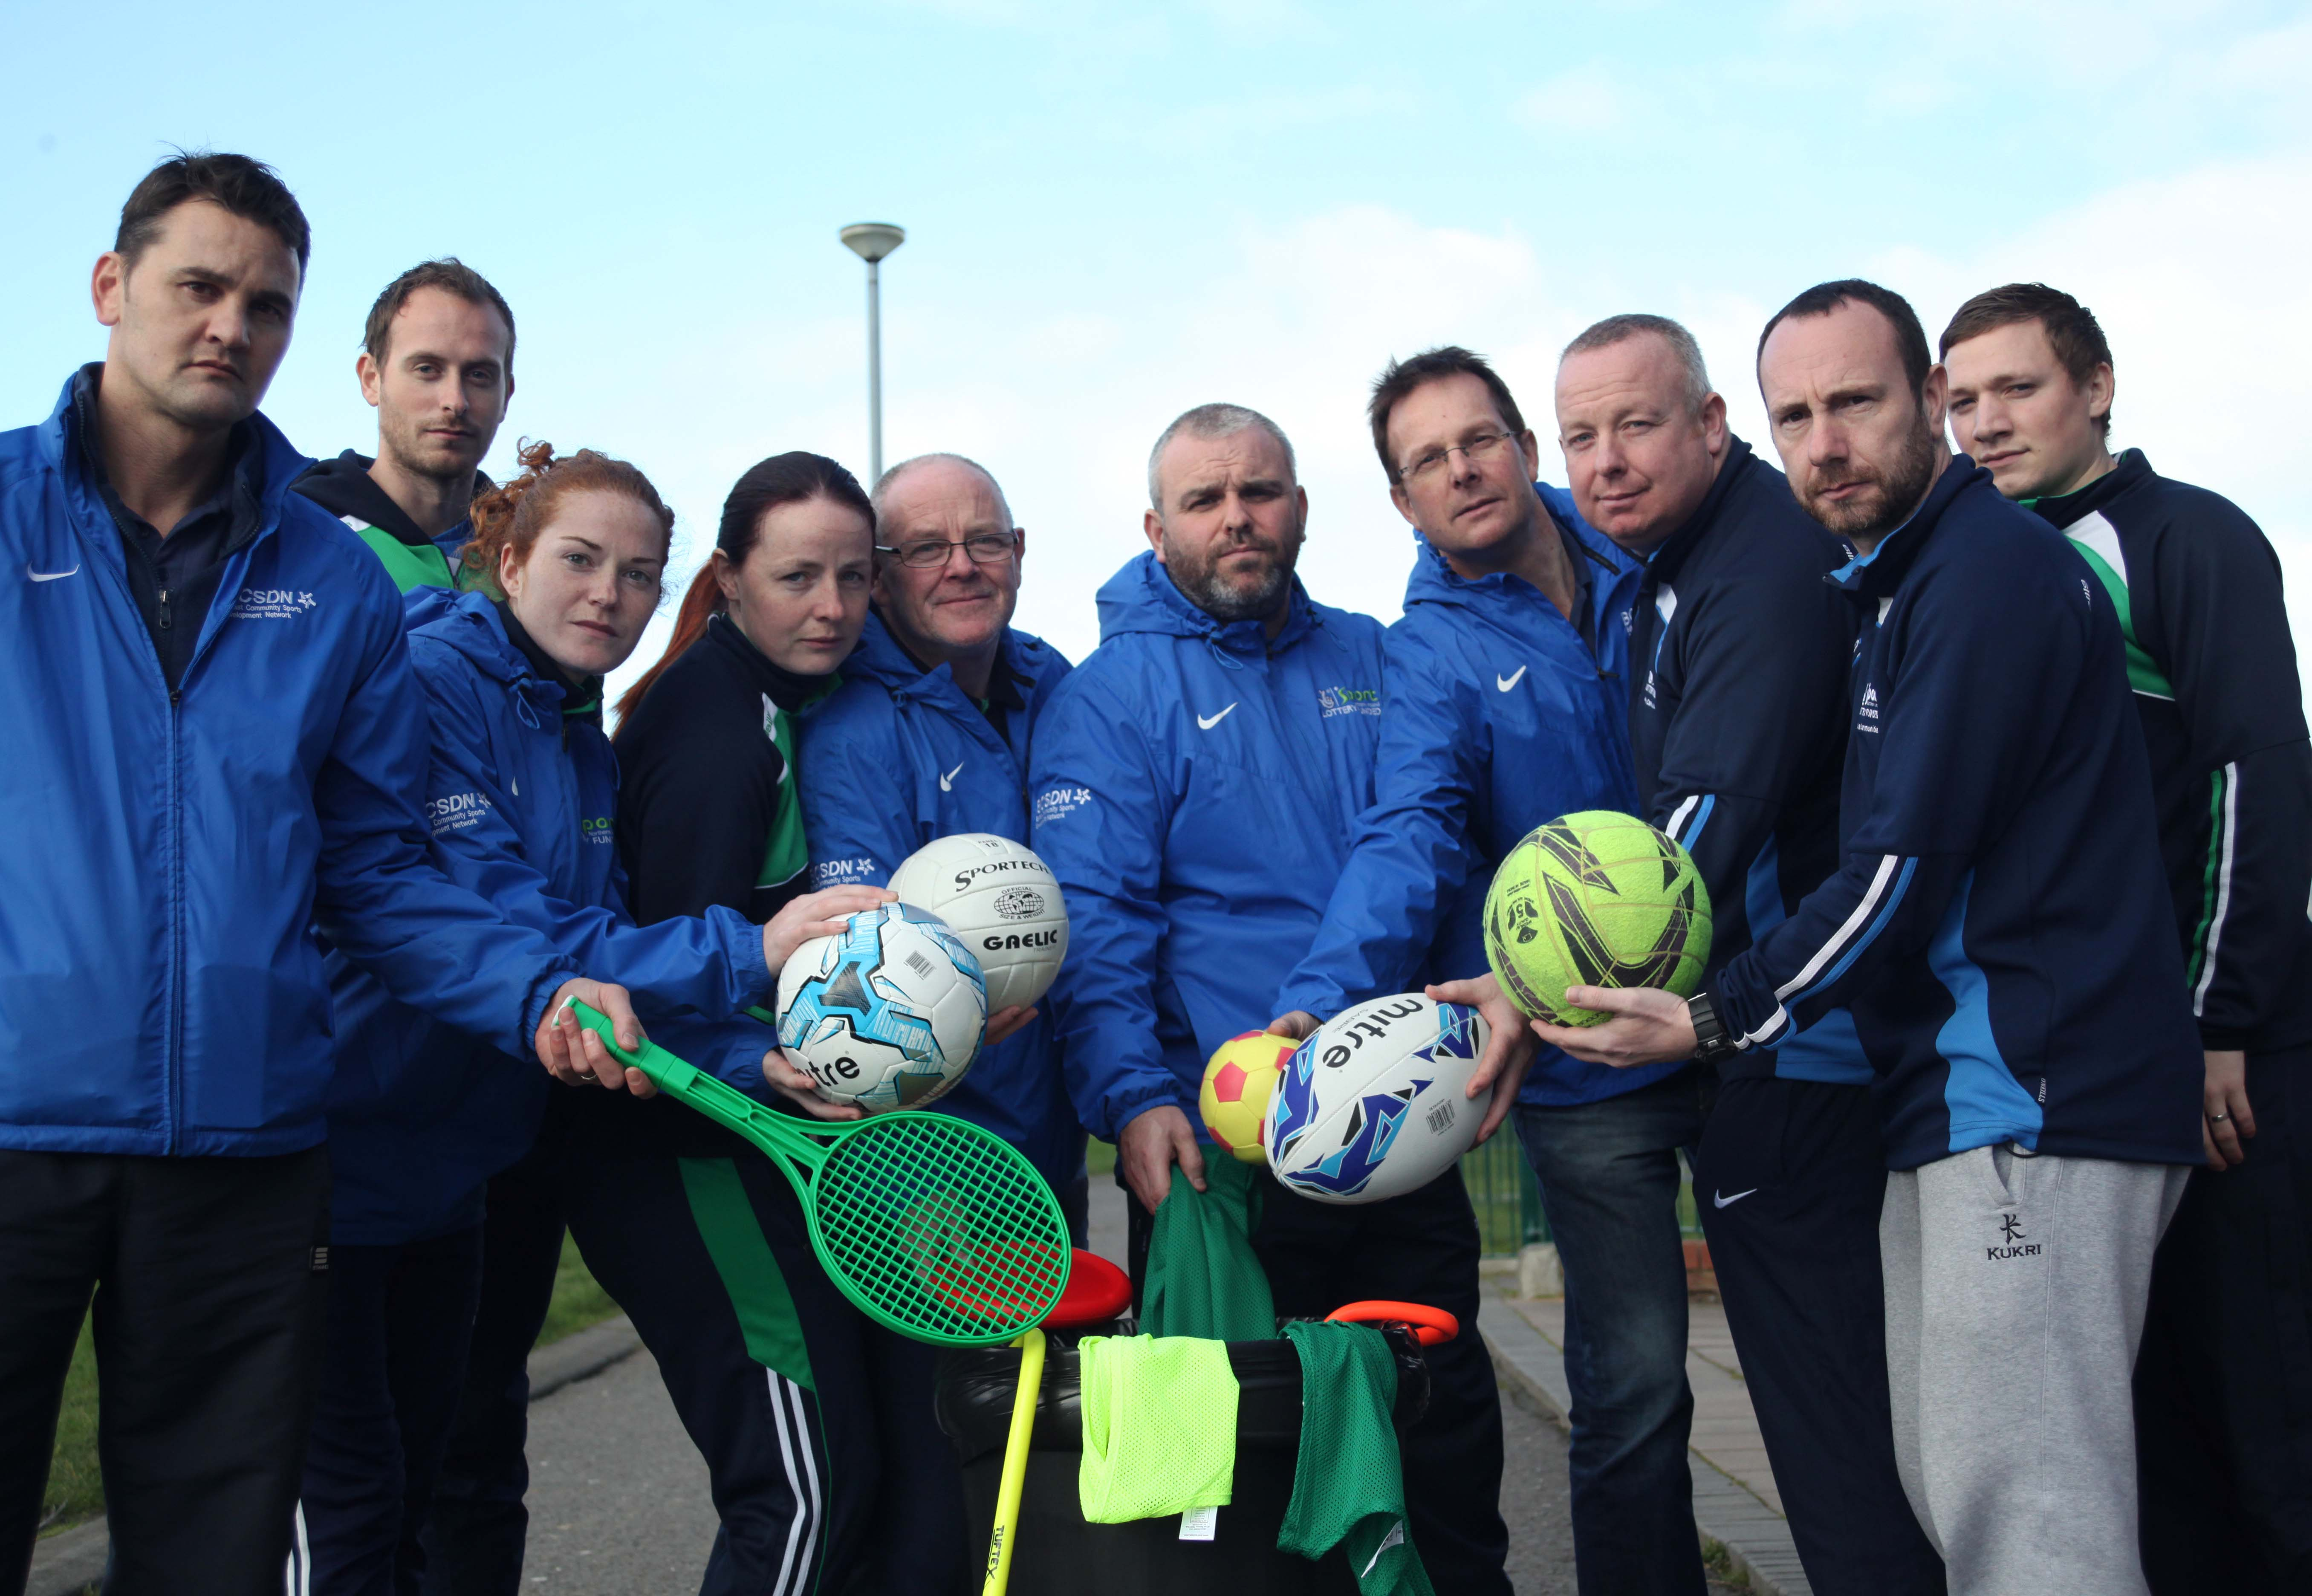 20 jobs in jeopardy as grassroots sports organisation faces closure